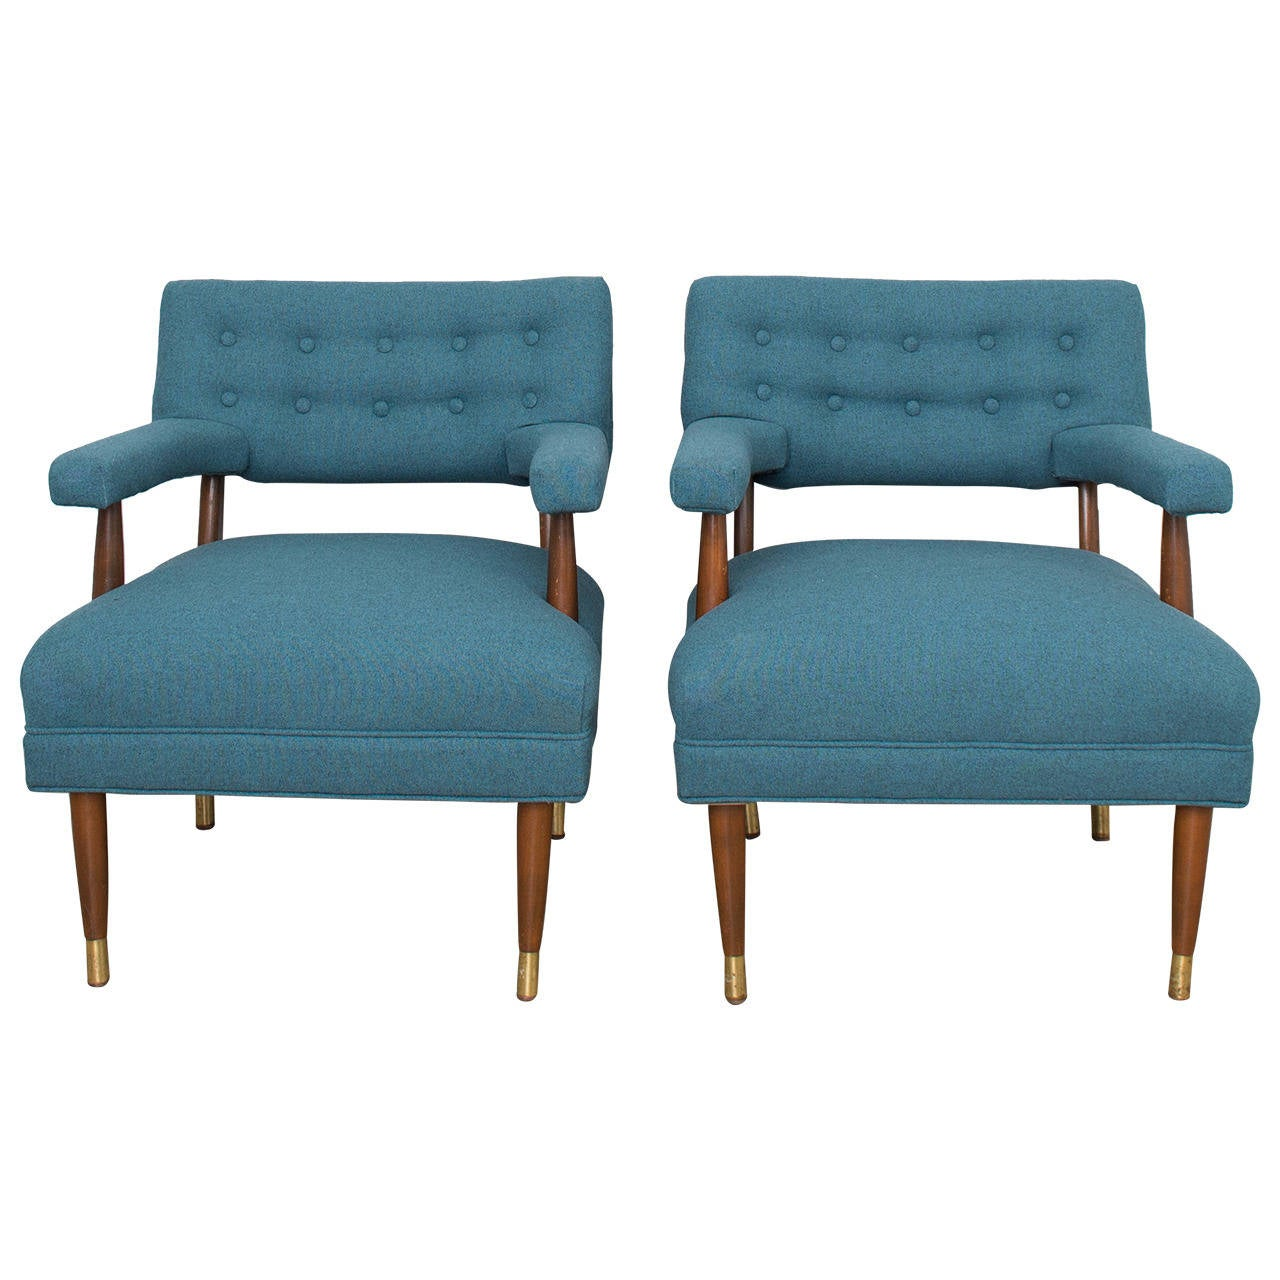 Mid Century Modern Tufted Lounge Chairs